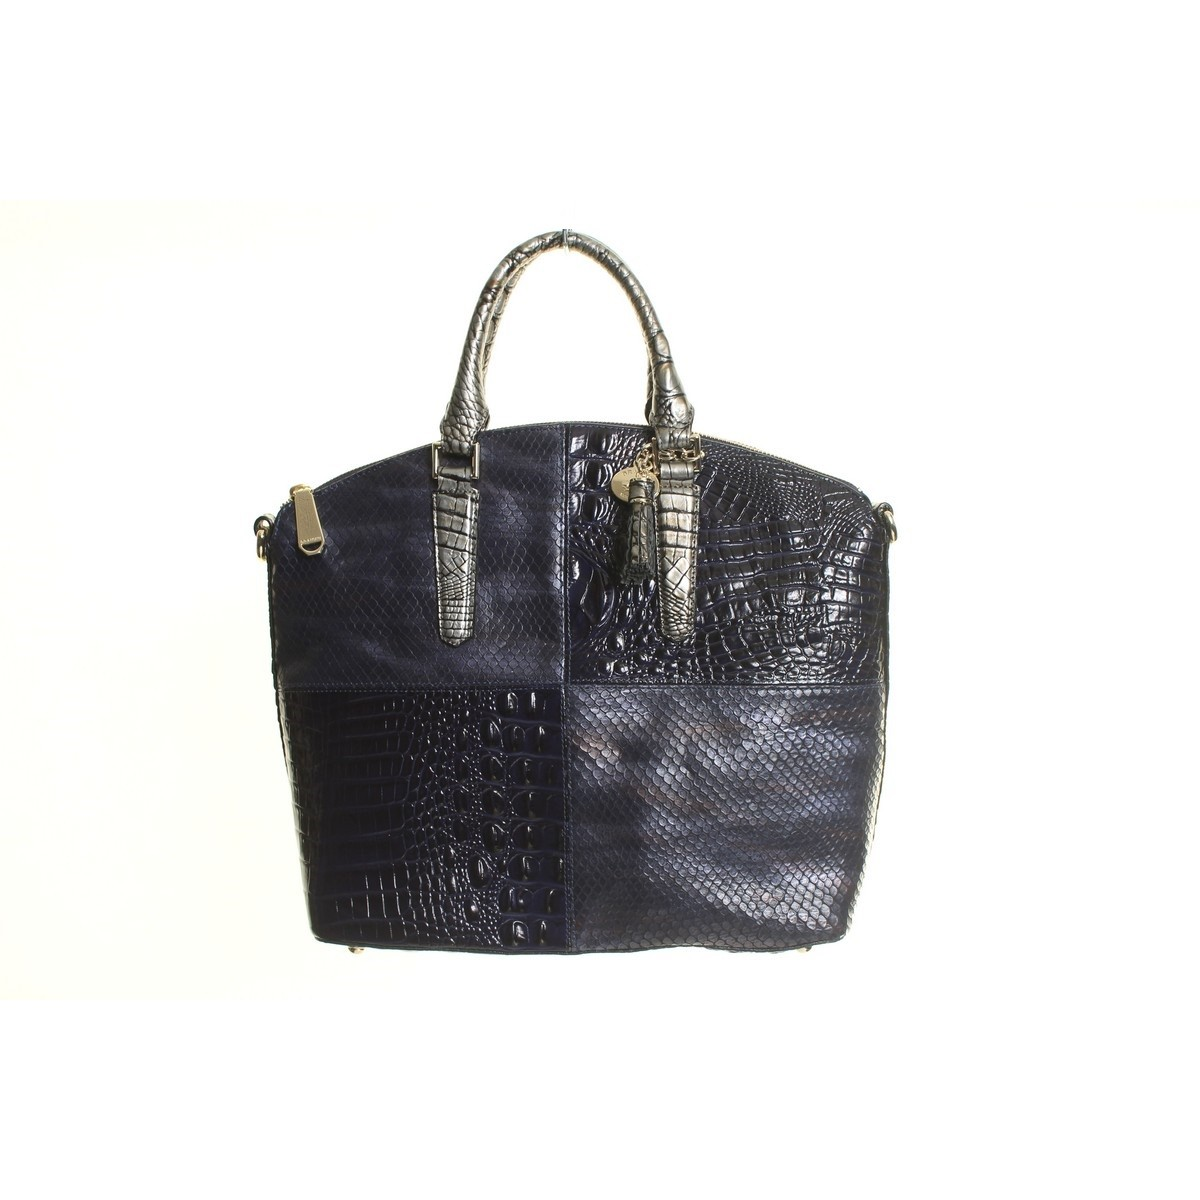 You searched for: navy blue satchel! Etsy is the home to thousands of handmade, vintage, and one-of-a-kind products and gifts related to your search. No matter what you're looking for or where you are in the world, our global marketplace of sellers can help you find unique and affordable options.